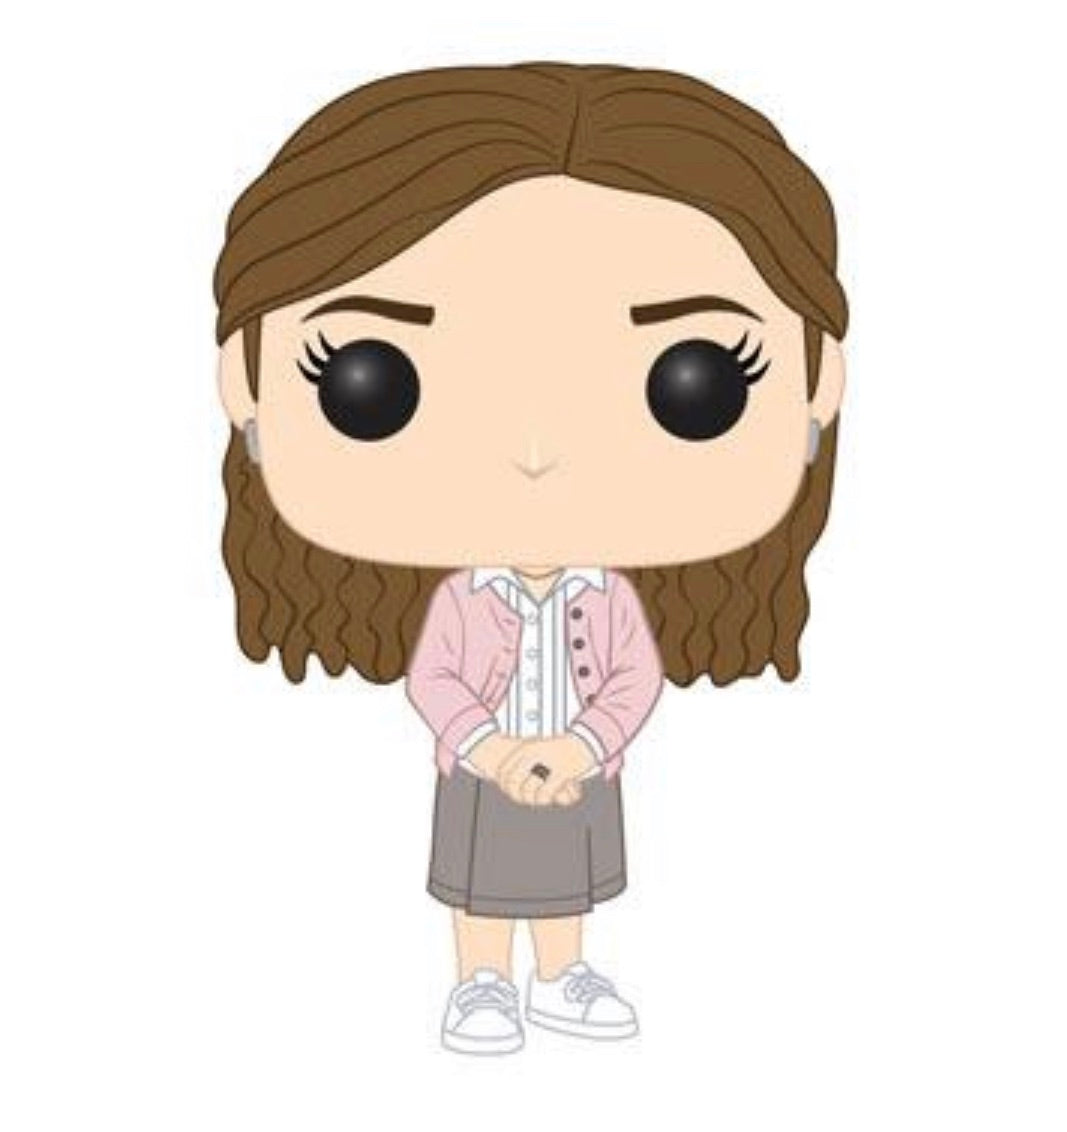 THE OFFICE FUNKO POP! PAM BEESLY (IN Stock)